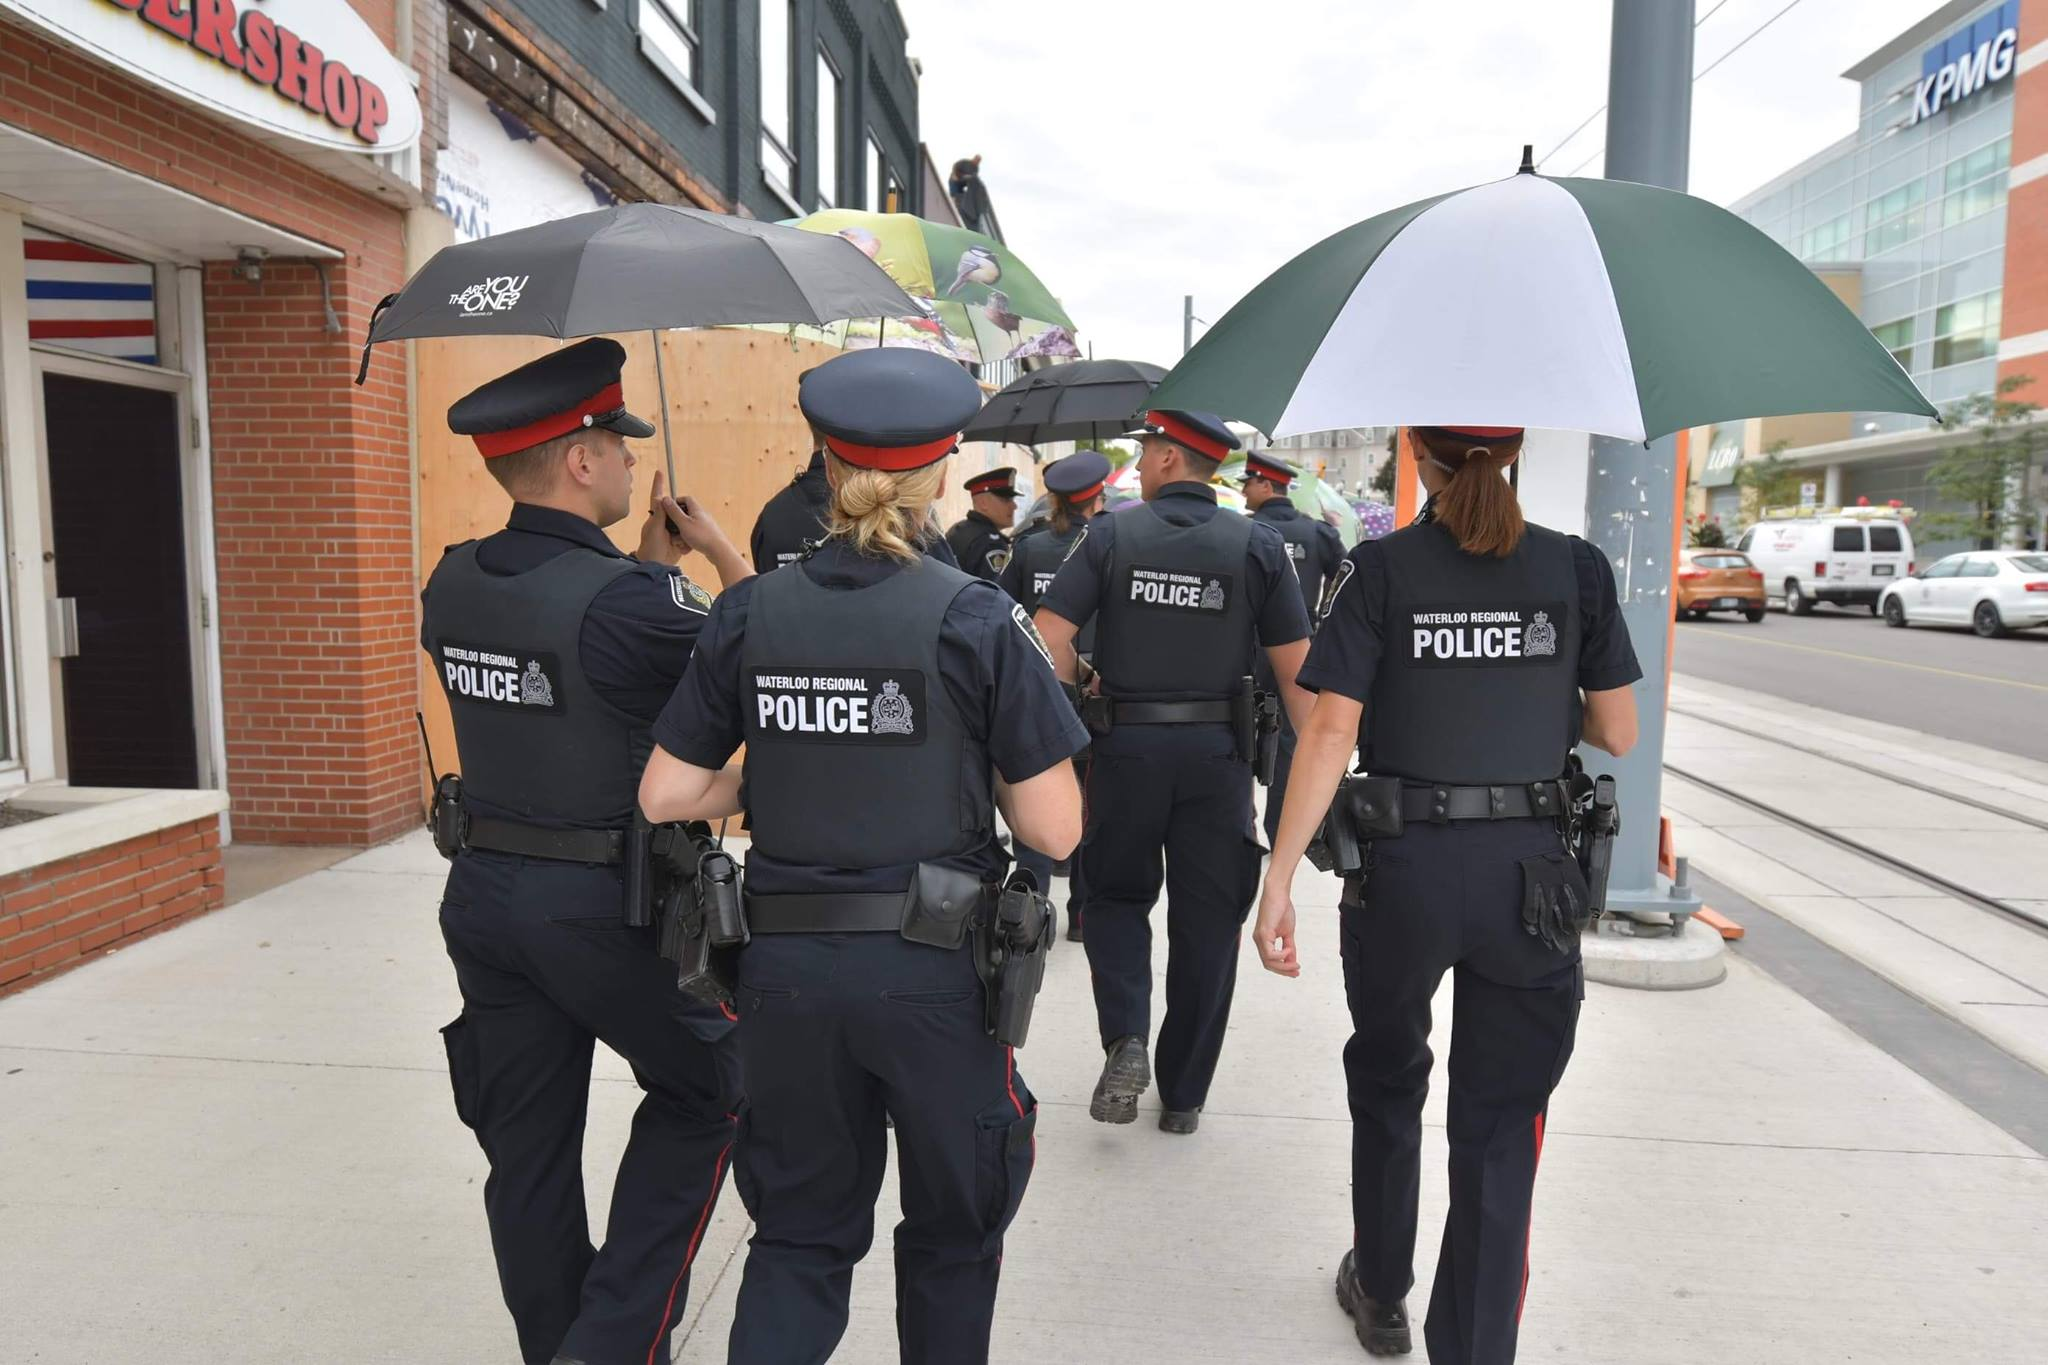 Waterloo Regional Police Service Hugo Women Kw Super Happy To Support The United Way Region Communities March Of 1000 Umbrellas Campaign